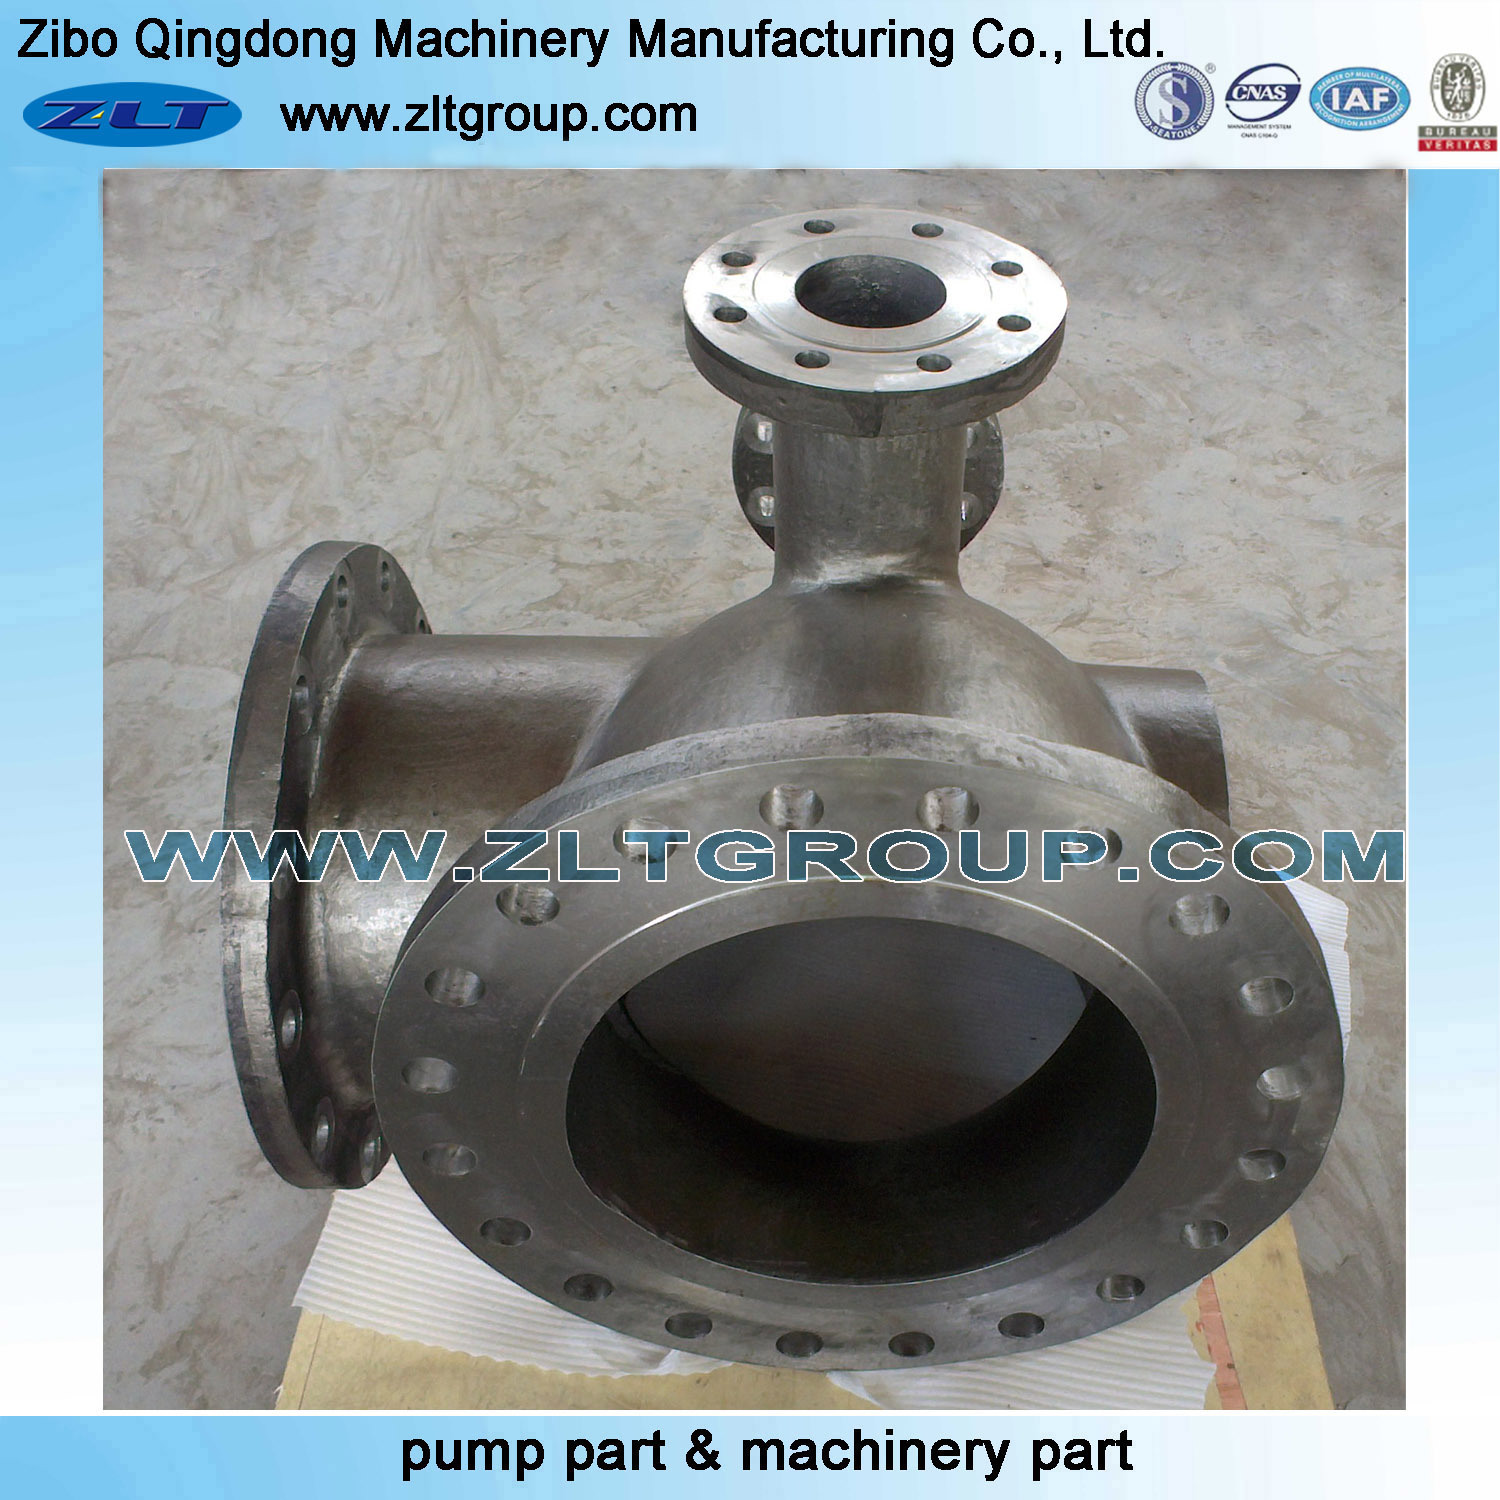 Mechanical Components CNC Machining Part Valve